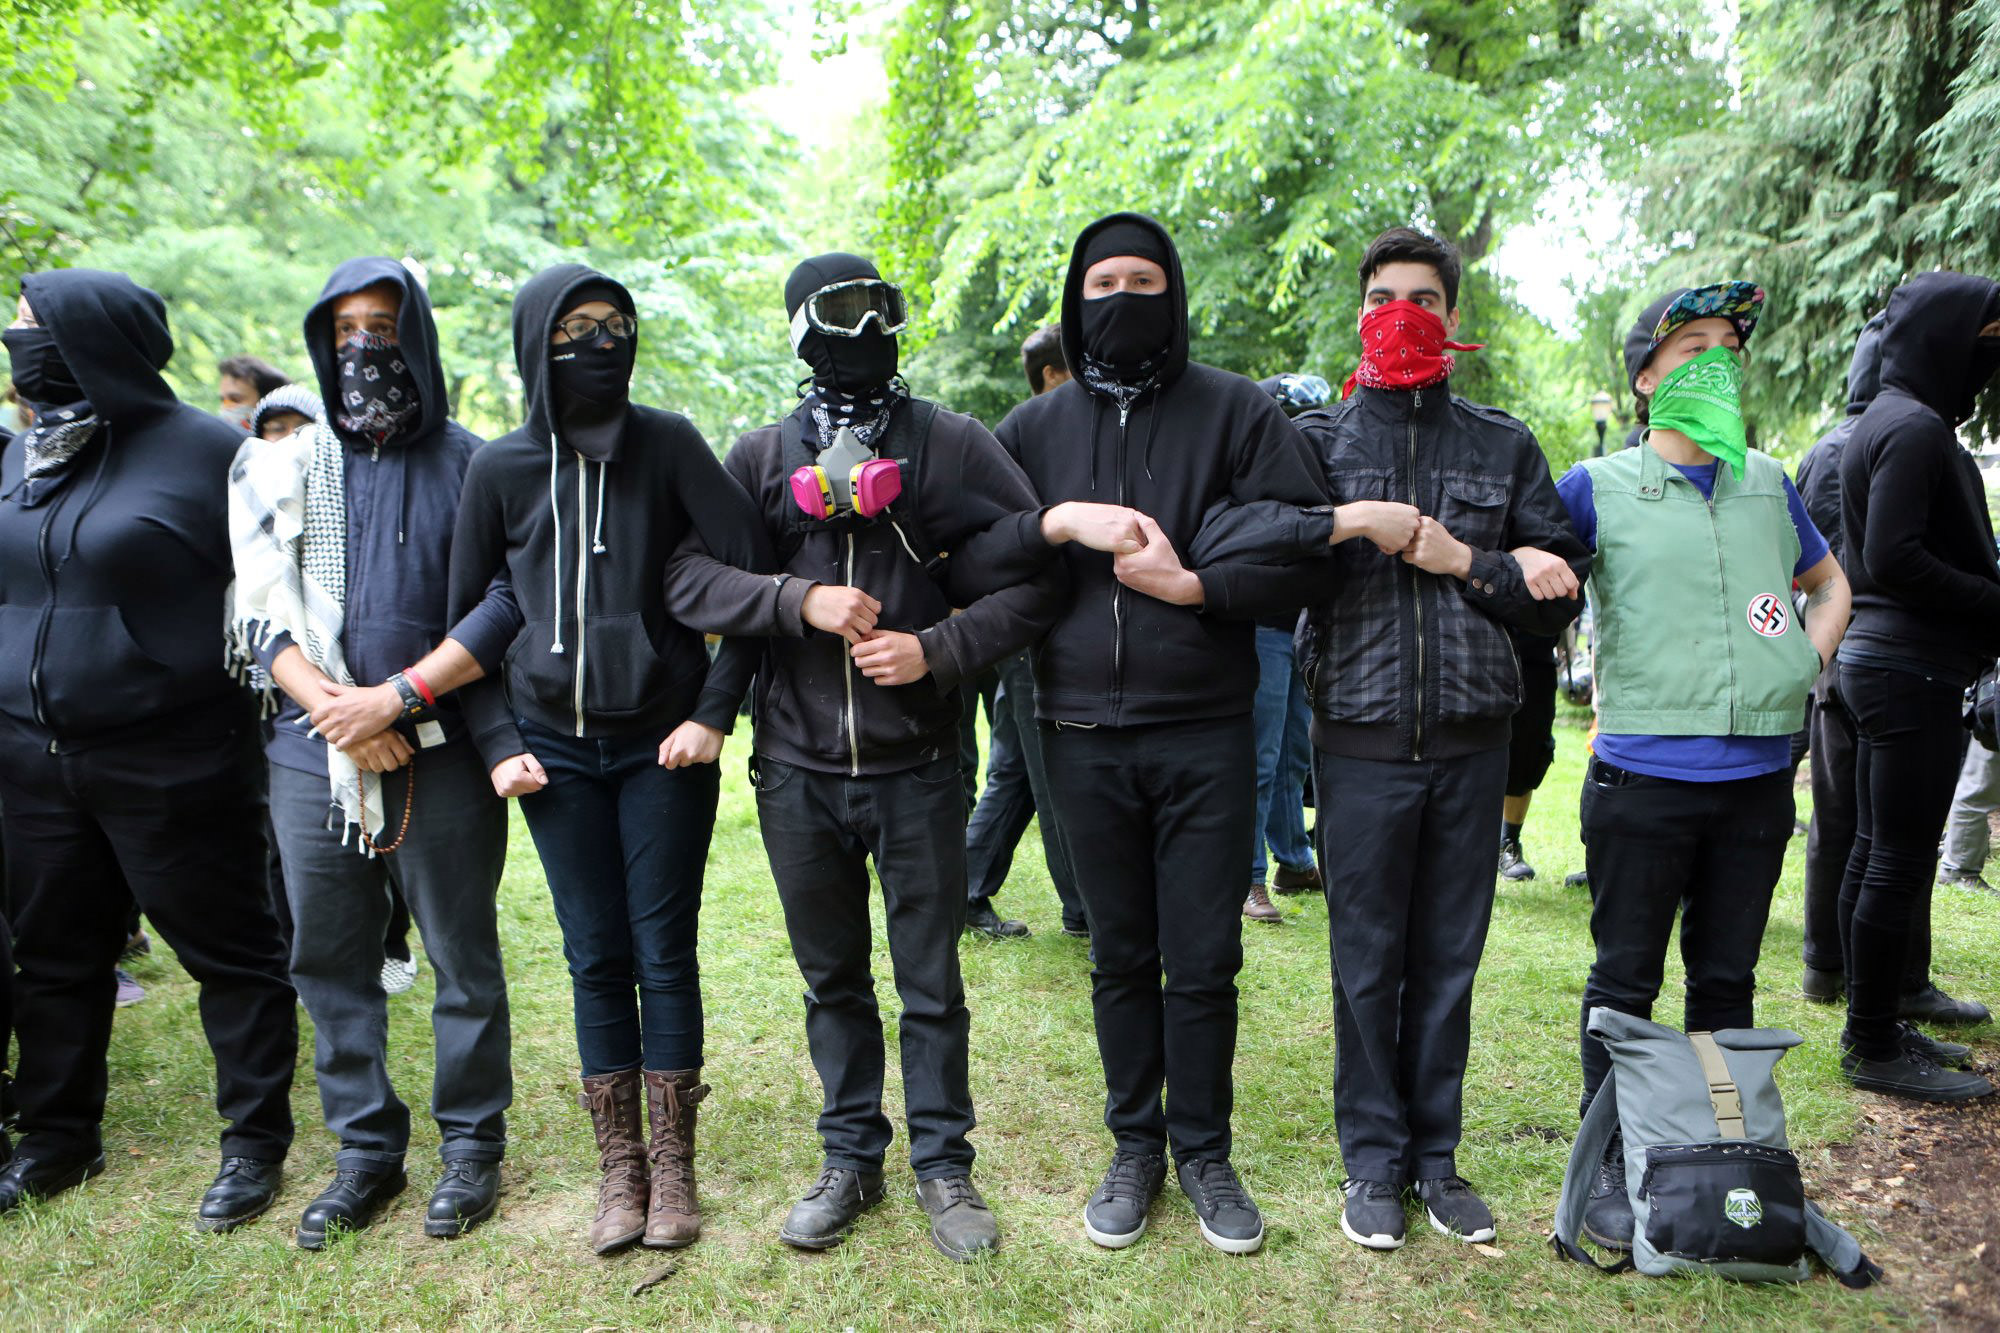 Antifascists in Portland June 4